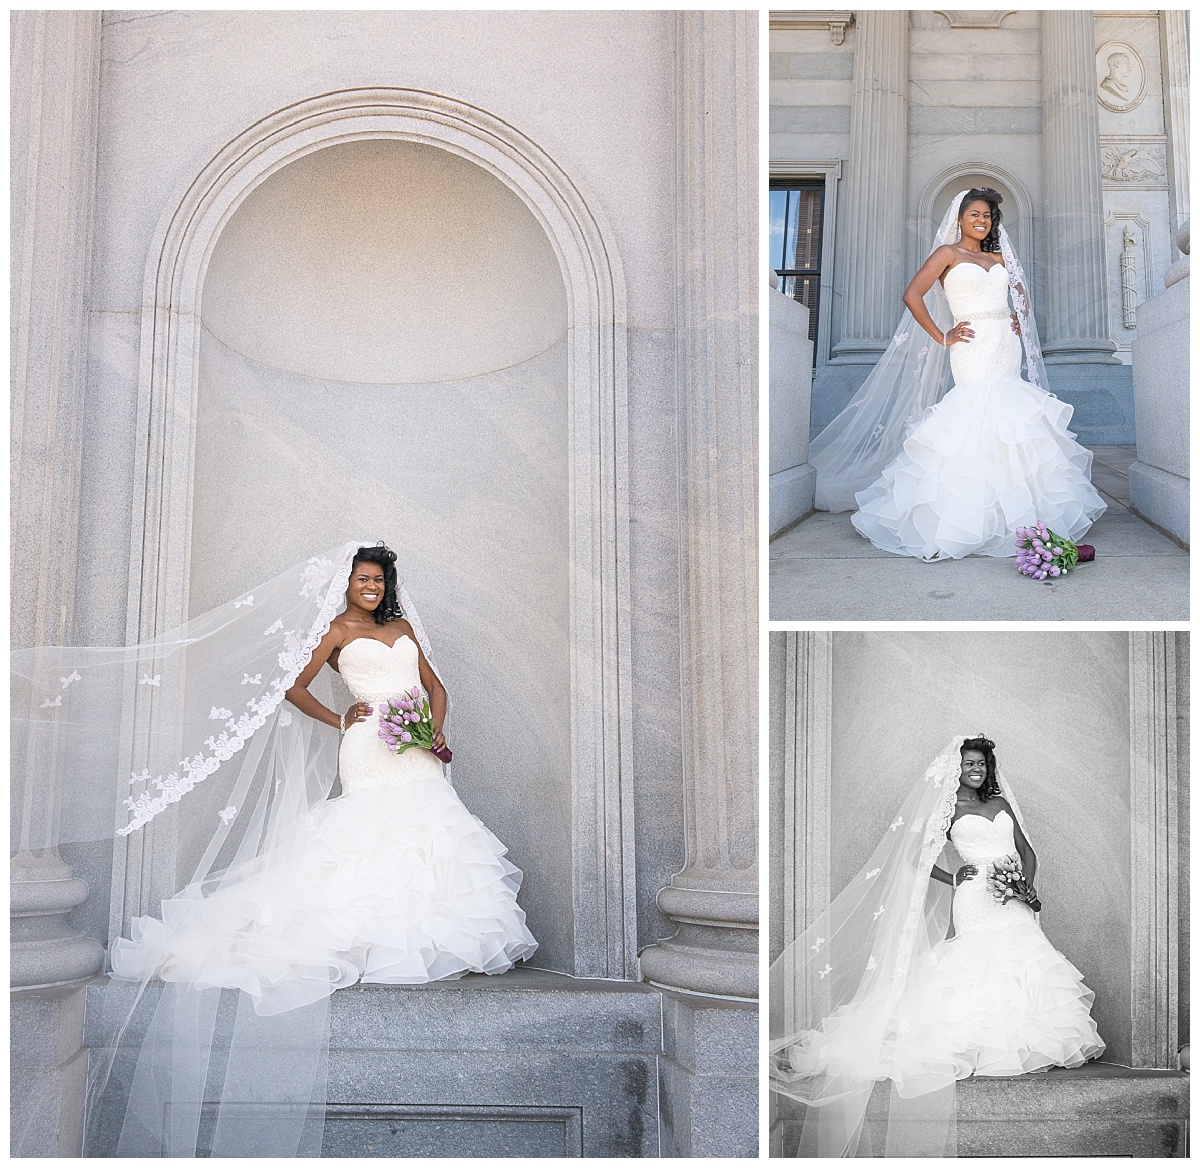 Bride in marble archway with long veil at SC state house